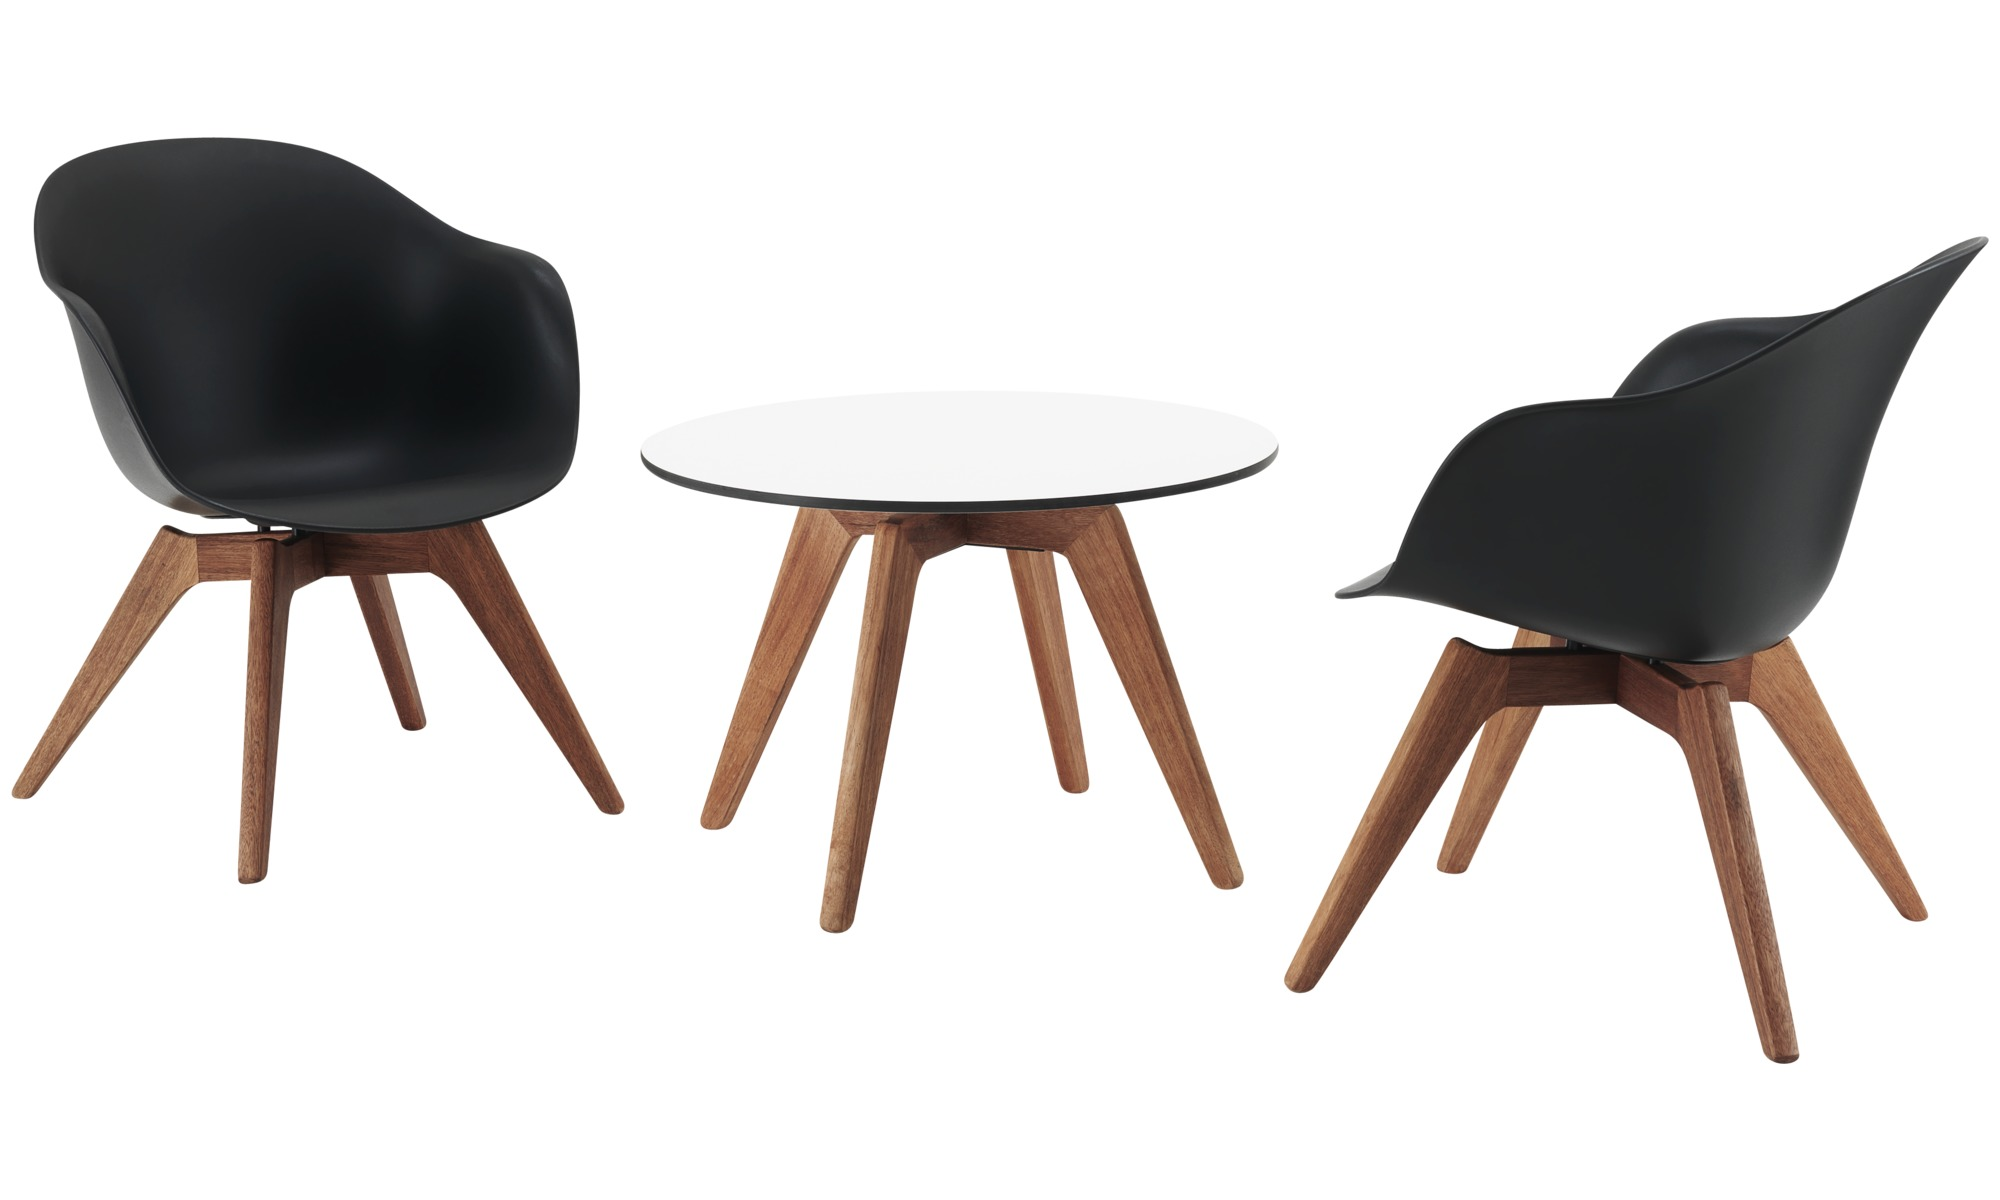 designs by frans schrofer adelaide table for in and outdoor use